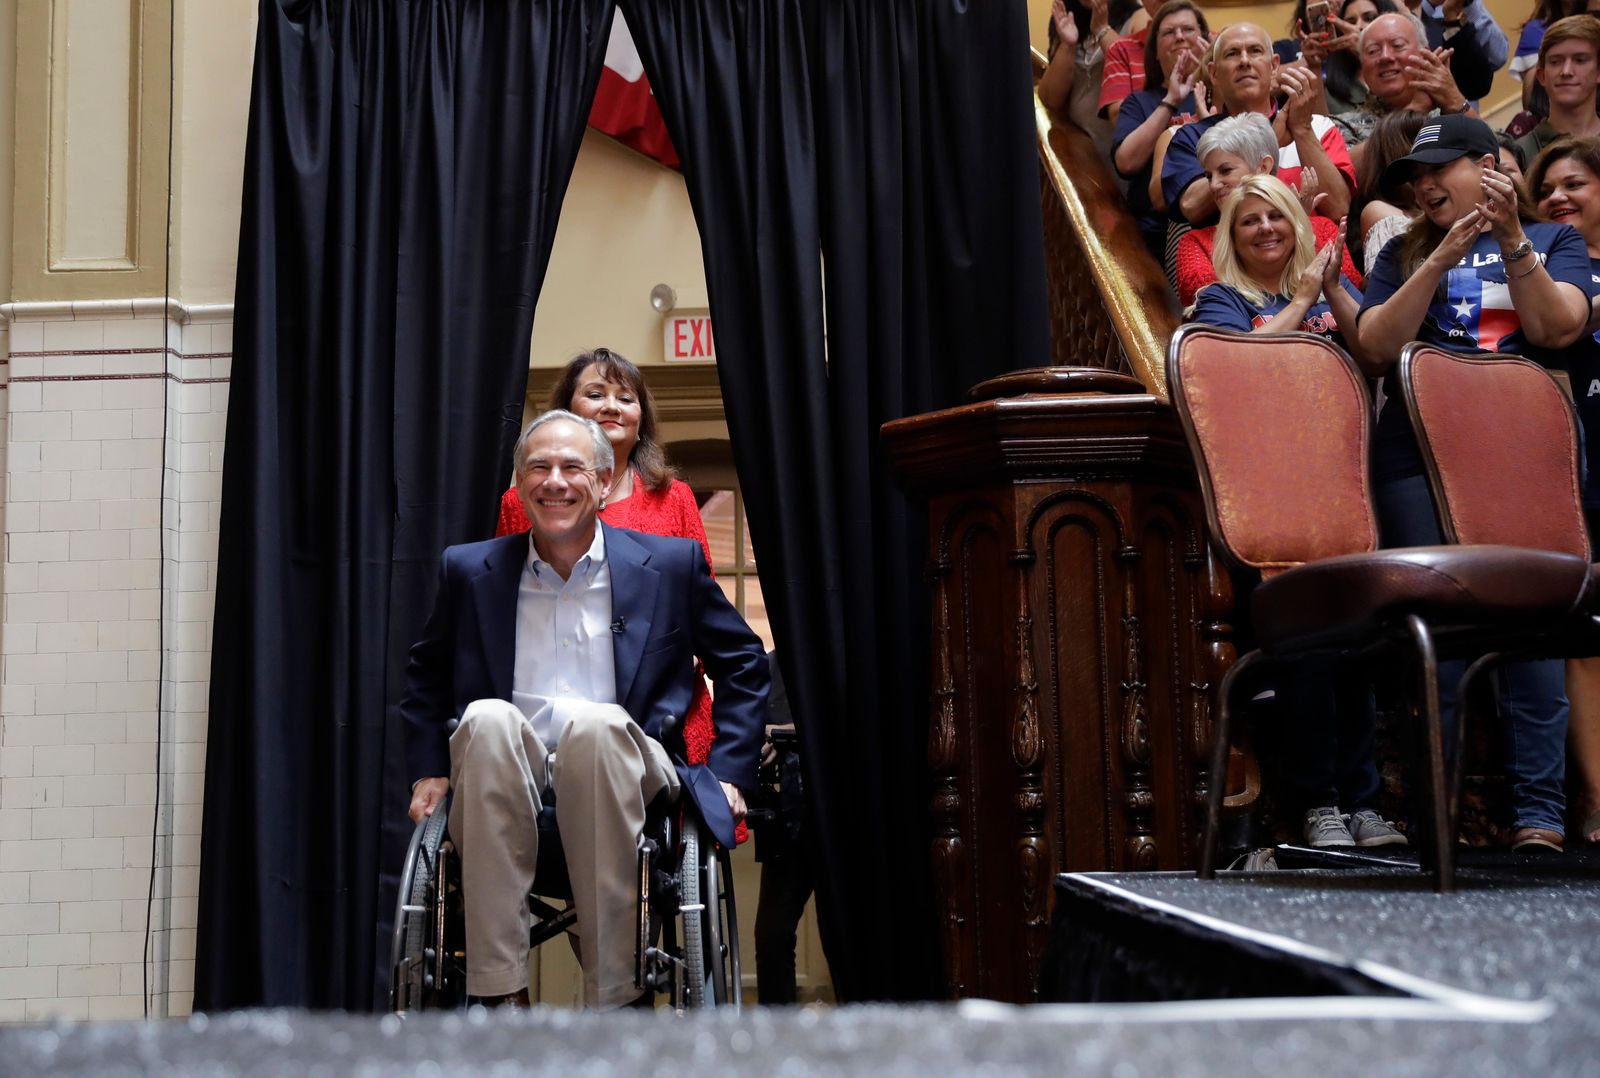 Texas Gov. Greg Abbott, left, followed by his wife Cecilia arrive for an event where he announced his bid for re-election, Friday, July 14, 2017, in San Antonio. (AP Photo/Eric Gay)